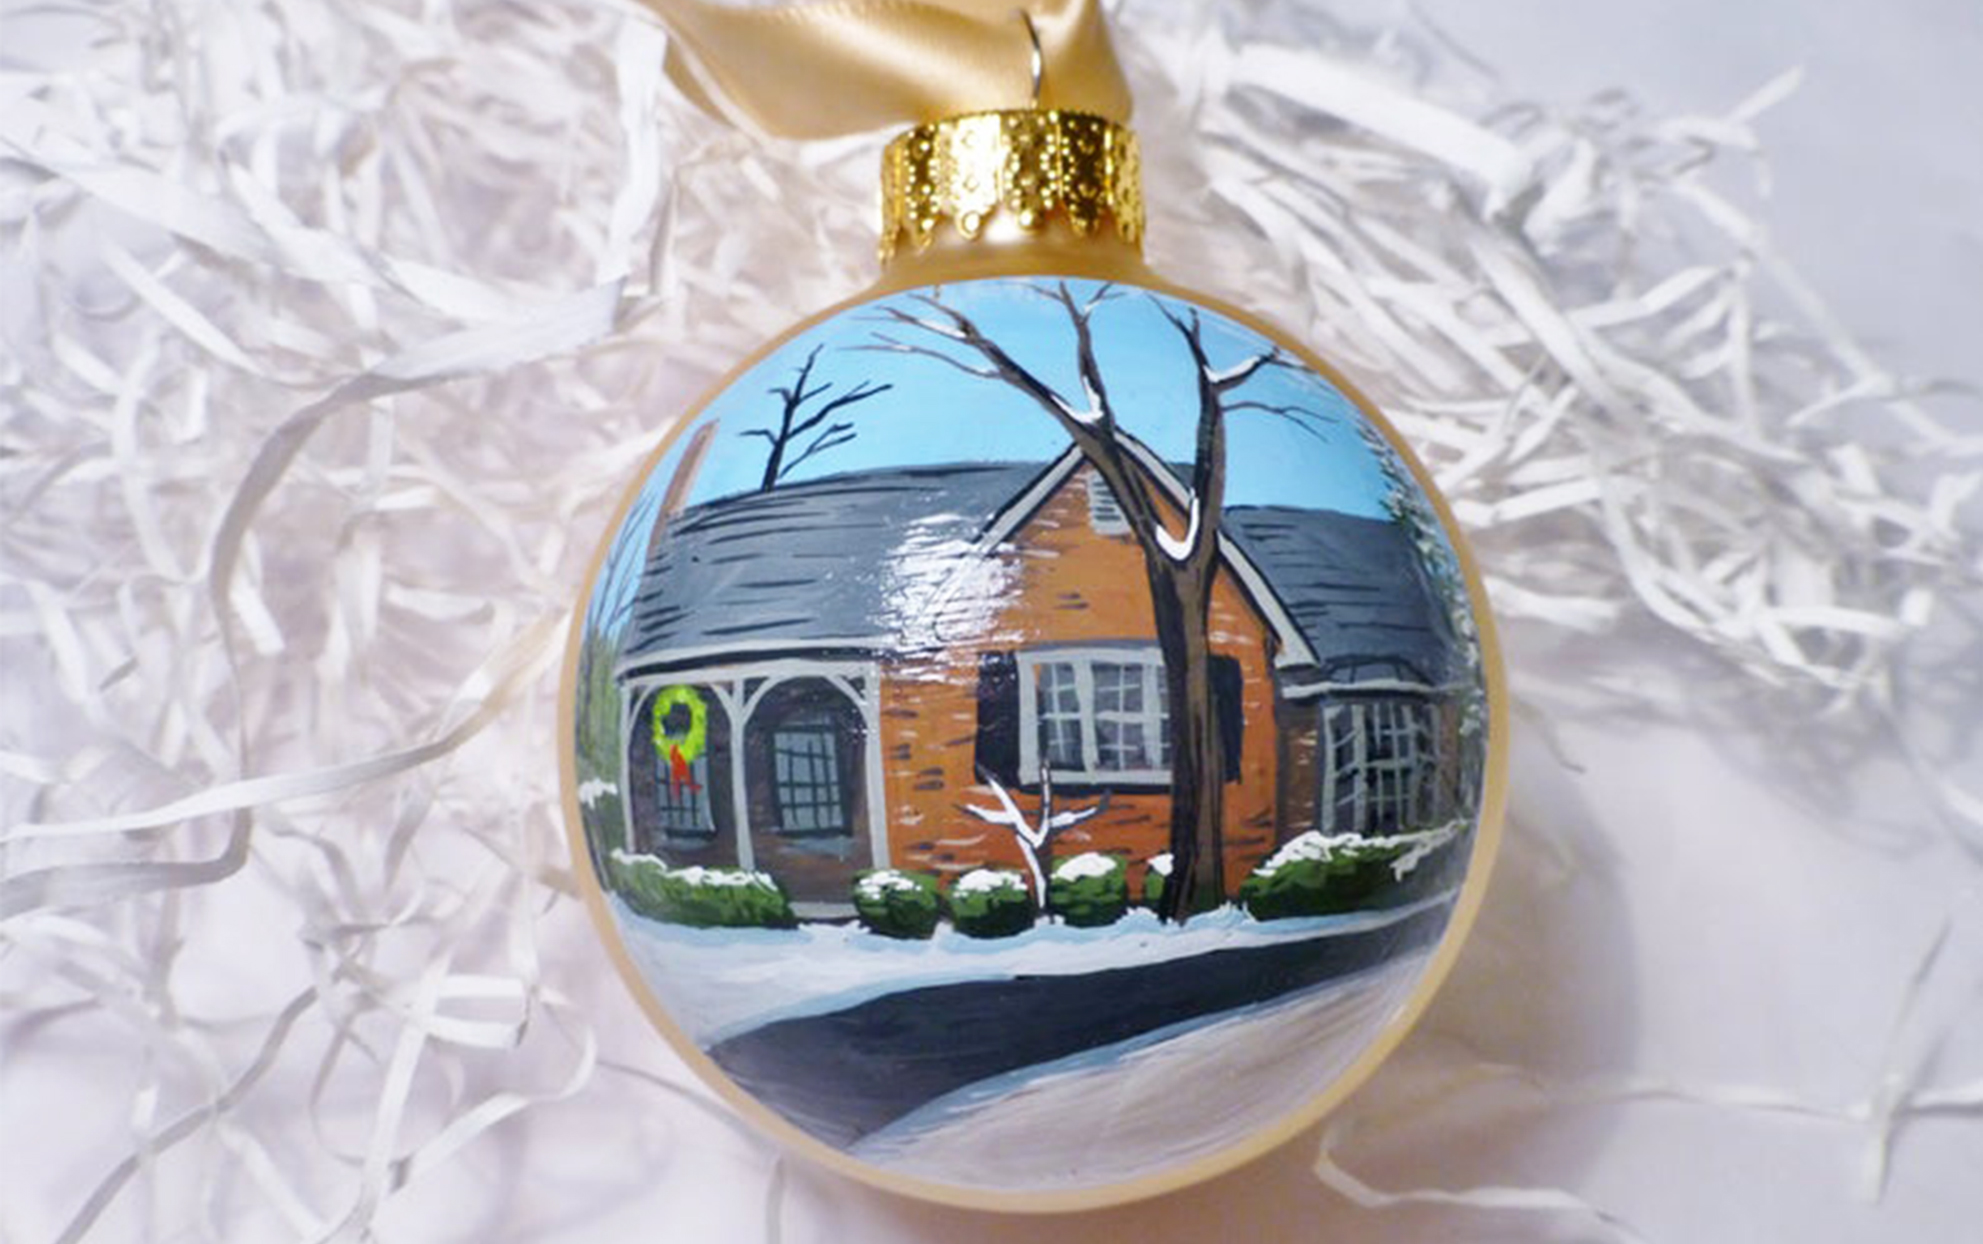 painted ornament of a house with a white background